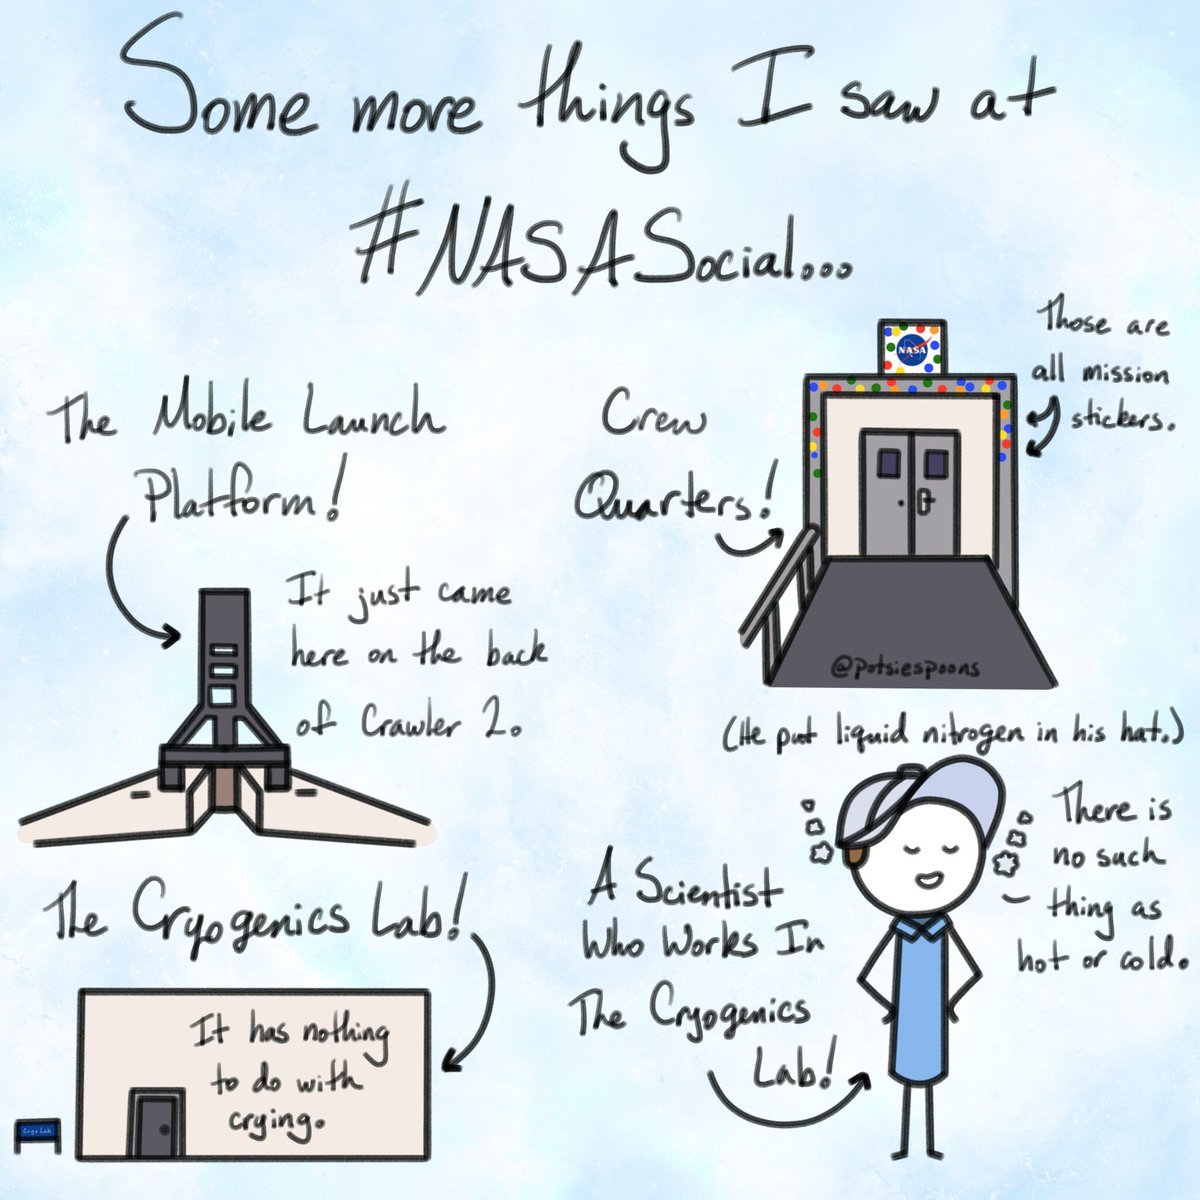 The mobile launcher, crew quarters, and cryogenics lab—oh my! Some more things from #NASASocial, featuring a scientist who really did put liquid nitrogen in his hat...then put it on his head. 😱 #ThereIsNoSuchThingAsHotOrCold @NASASocial